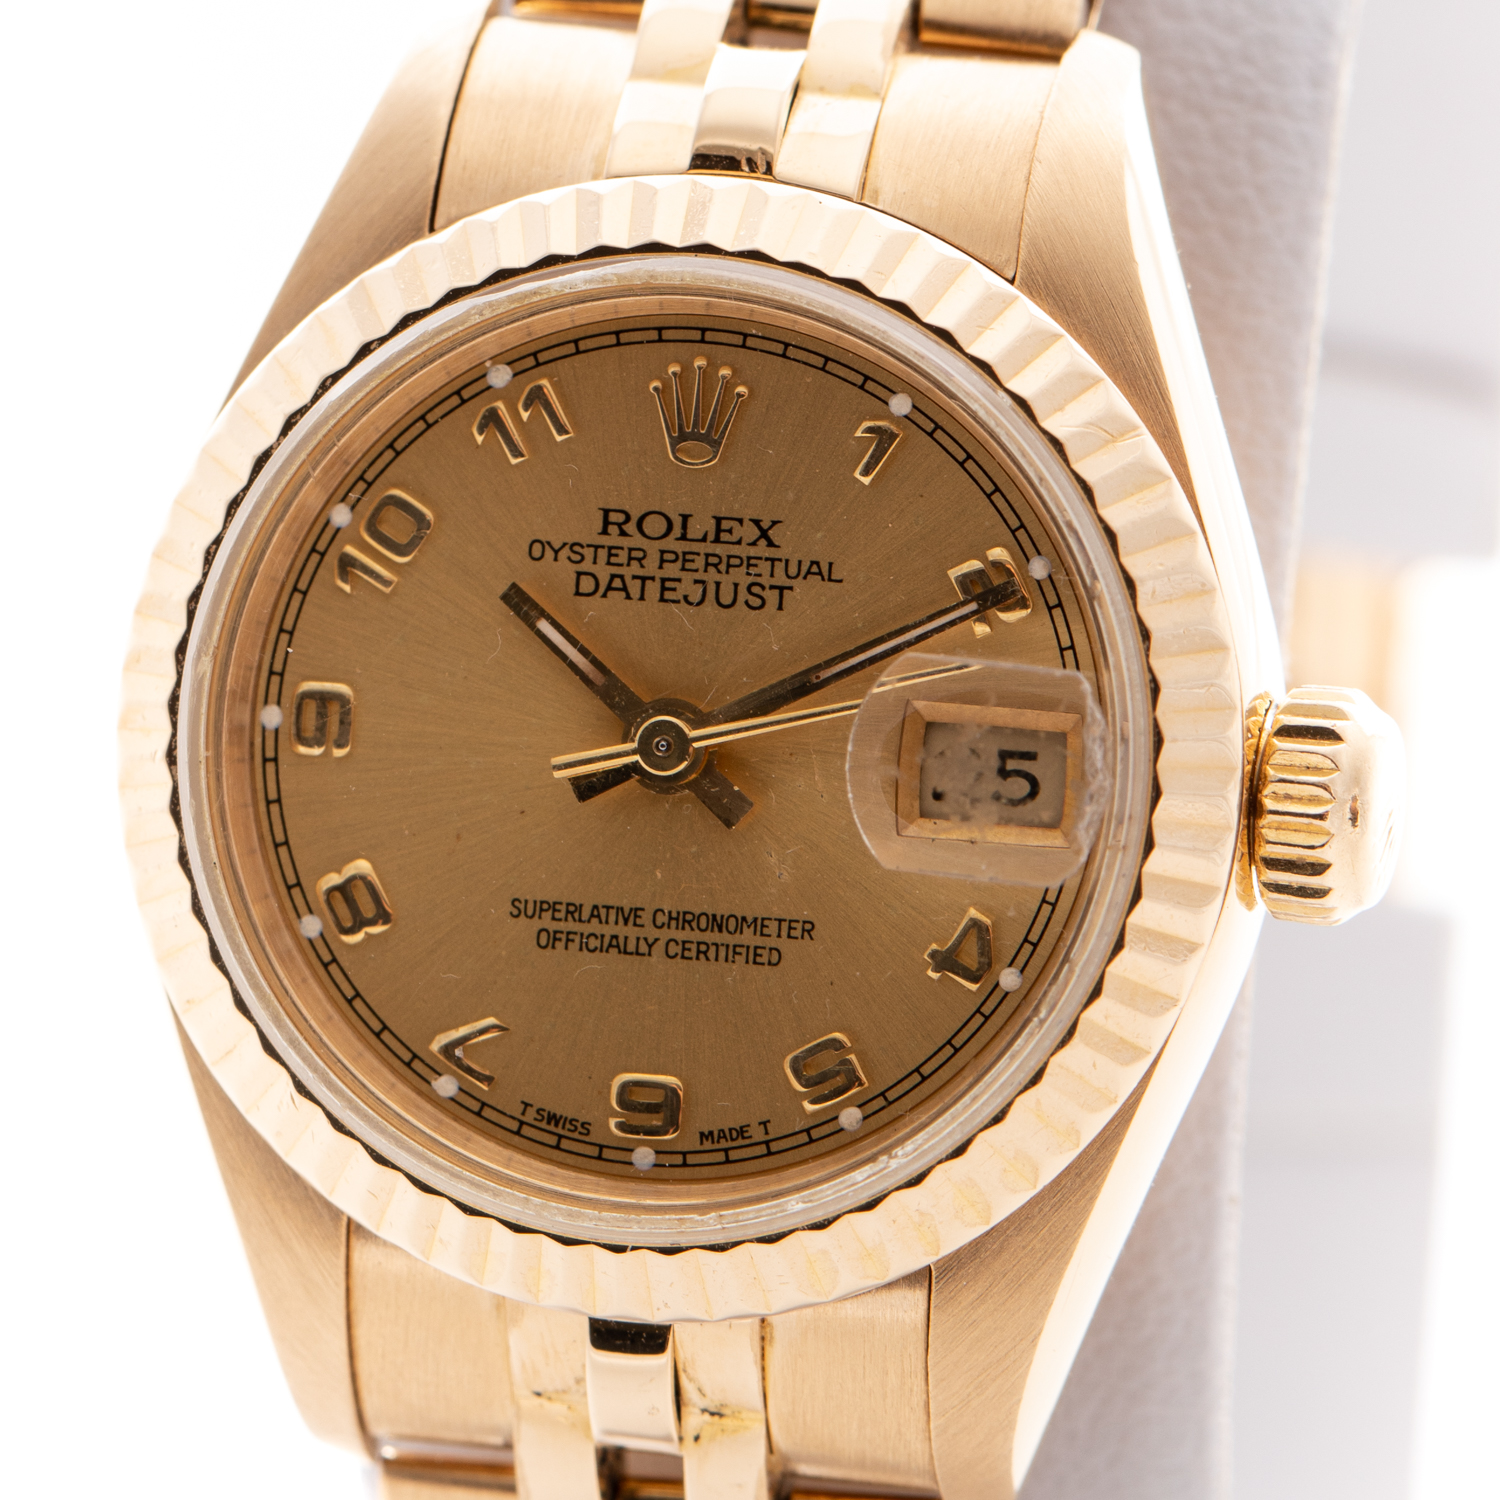 ROLEX DATEJUST 18K YELLOW GOLD OYSTER PERPETUAL VINTAGE REF: 69168